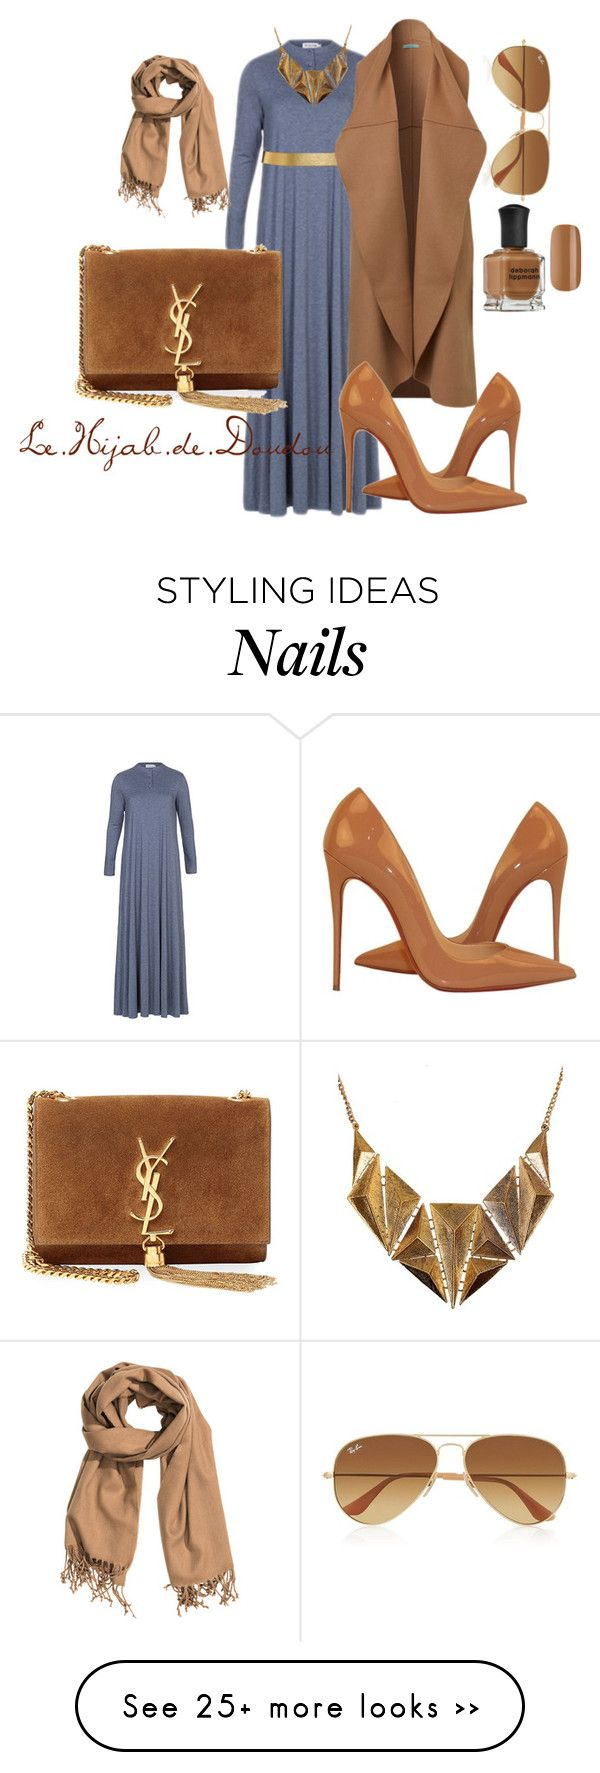 """Hijab Outfit"" by le-hijab-de-doudou on Polyvore featuring мода, Deborah Lippmann, ASOS, Yves Saint Laurent, Ruby Rocks, Ray-Ban, H&M и Christian Louboutin"